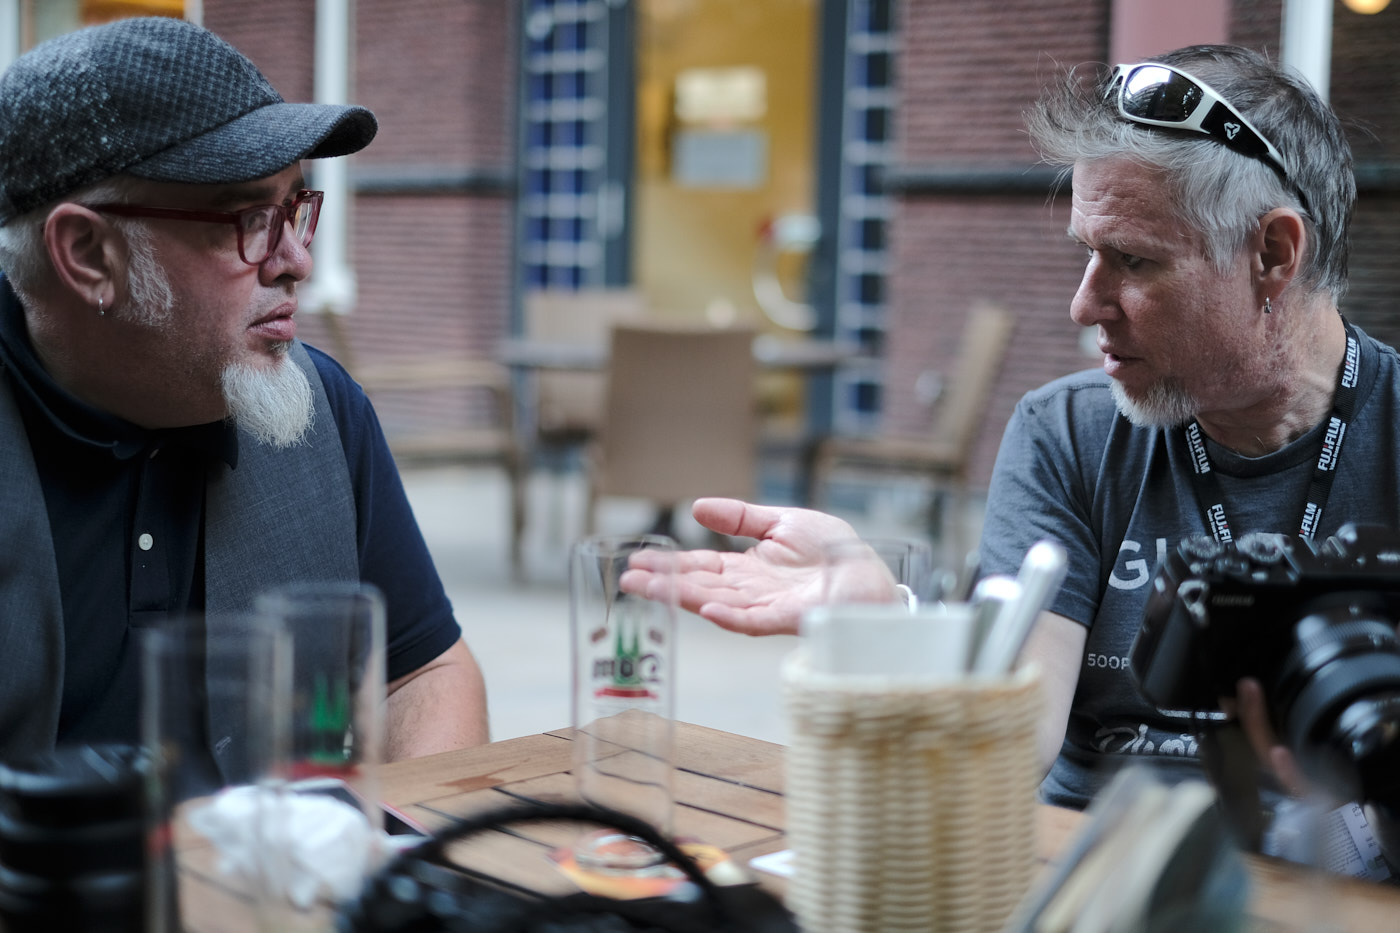 legends  Zack Arias  and  Patrick LaRoque  in an intense conversation about photography (honestly they were just nerding out about being able to talk to their watches like  David Hasselhof .